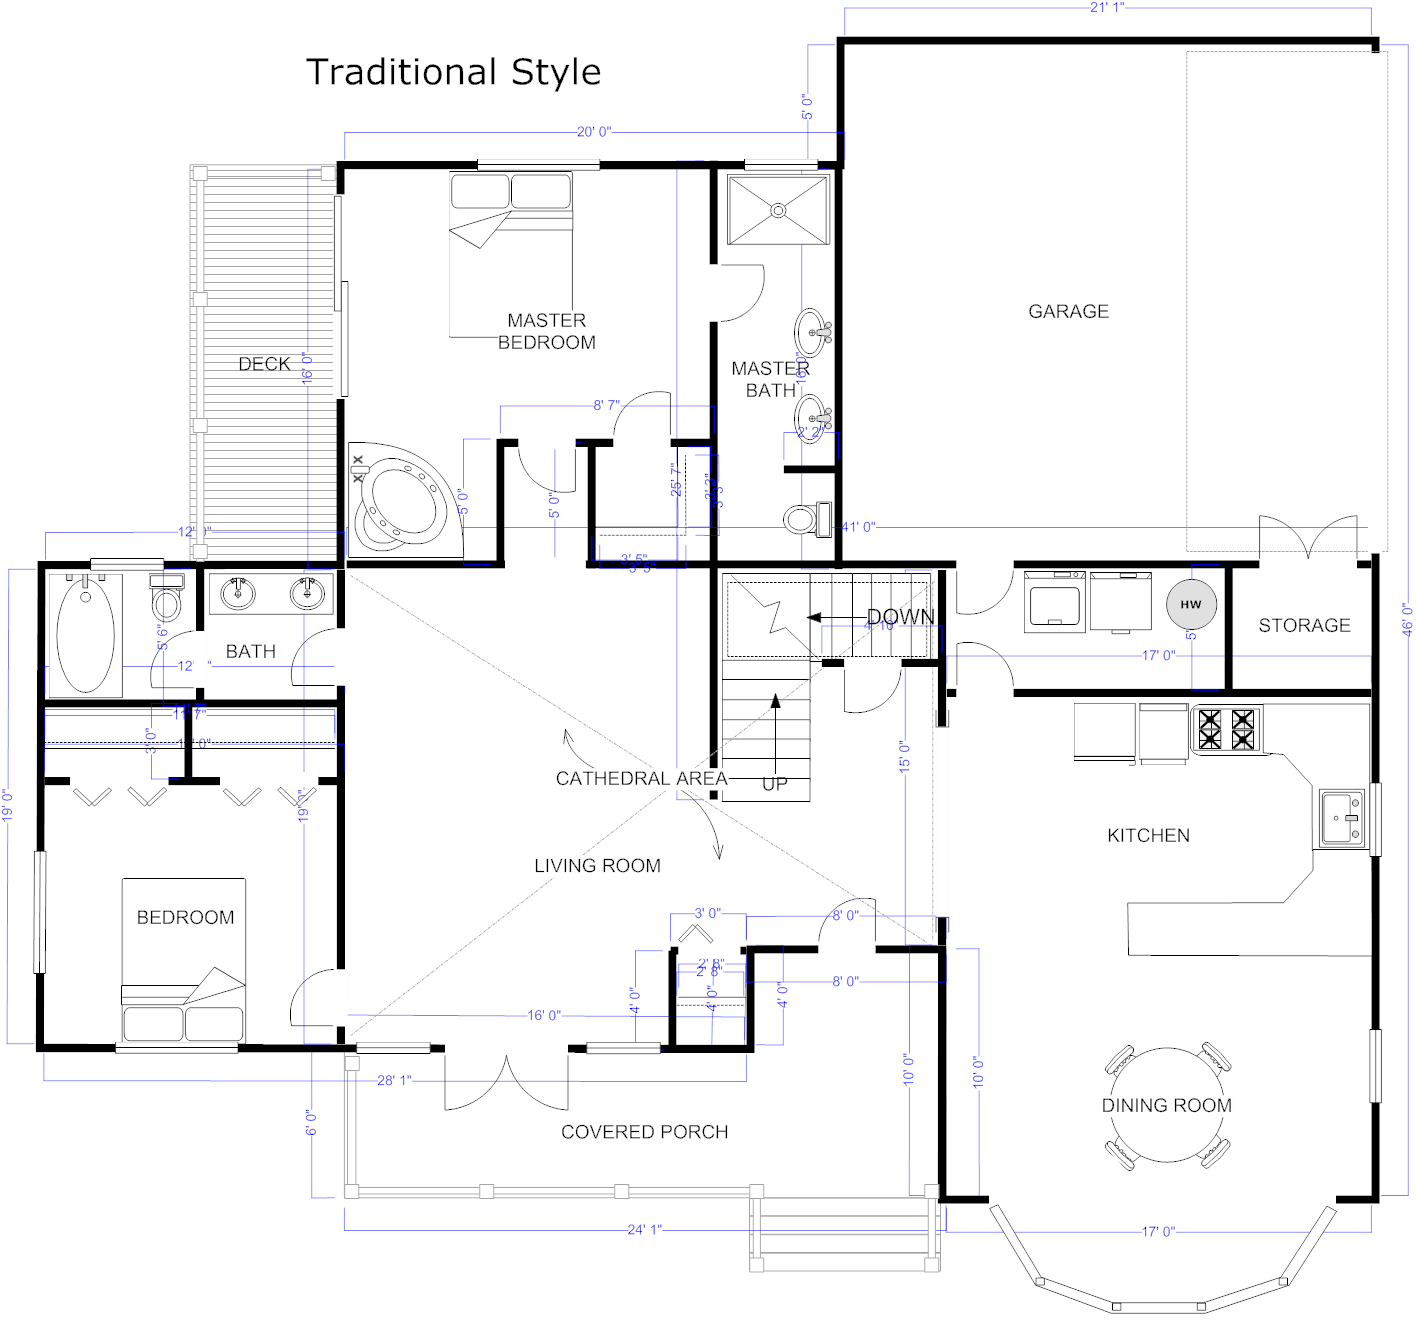 Architecture Design Your Own Home architecture software | free download & online app